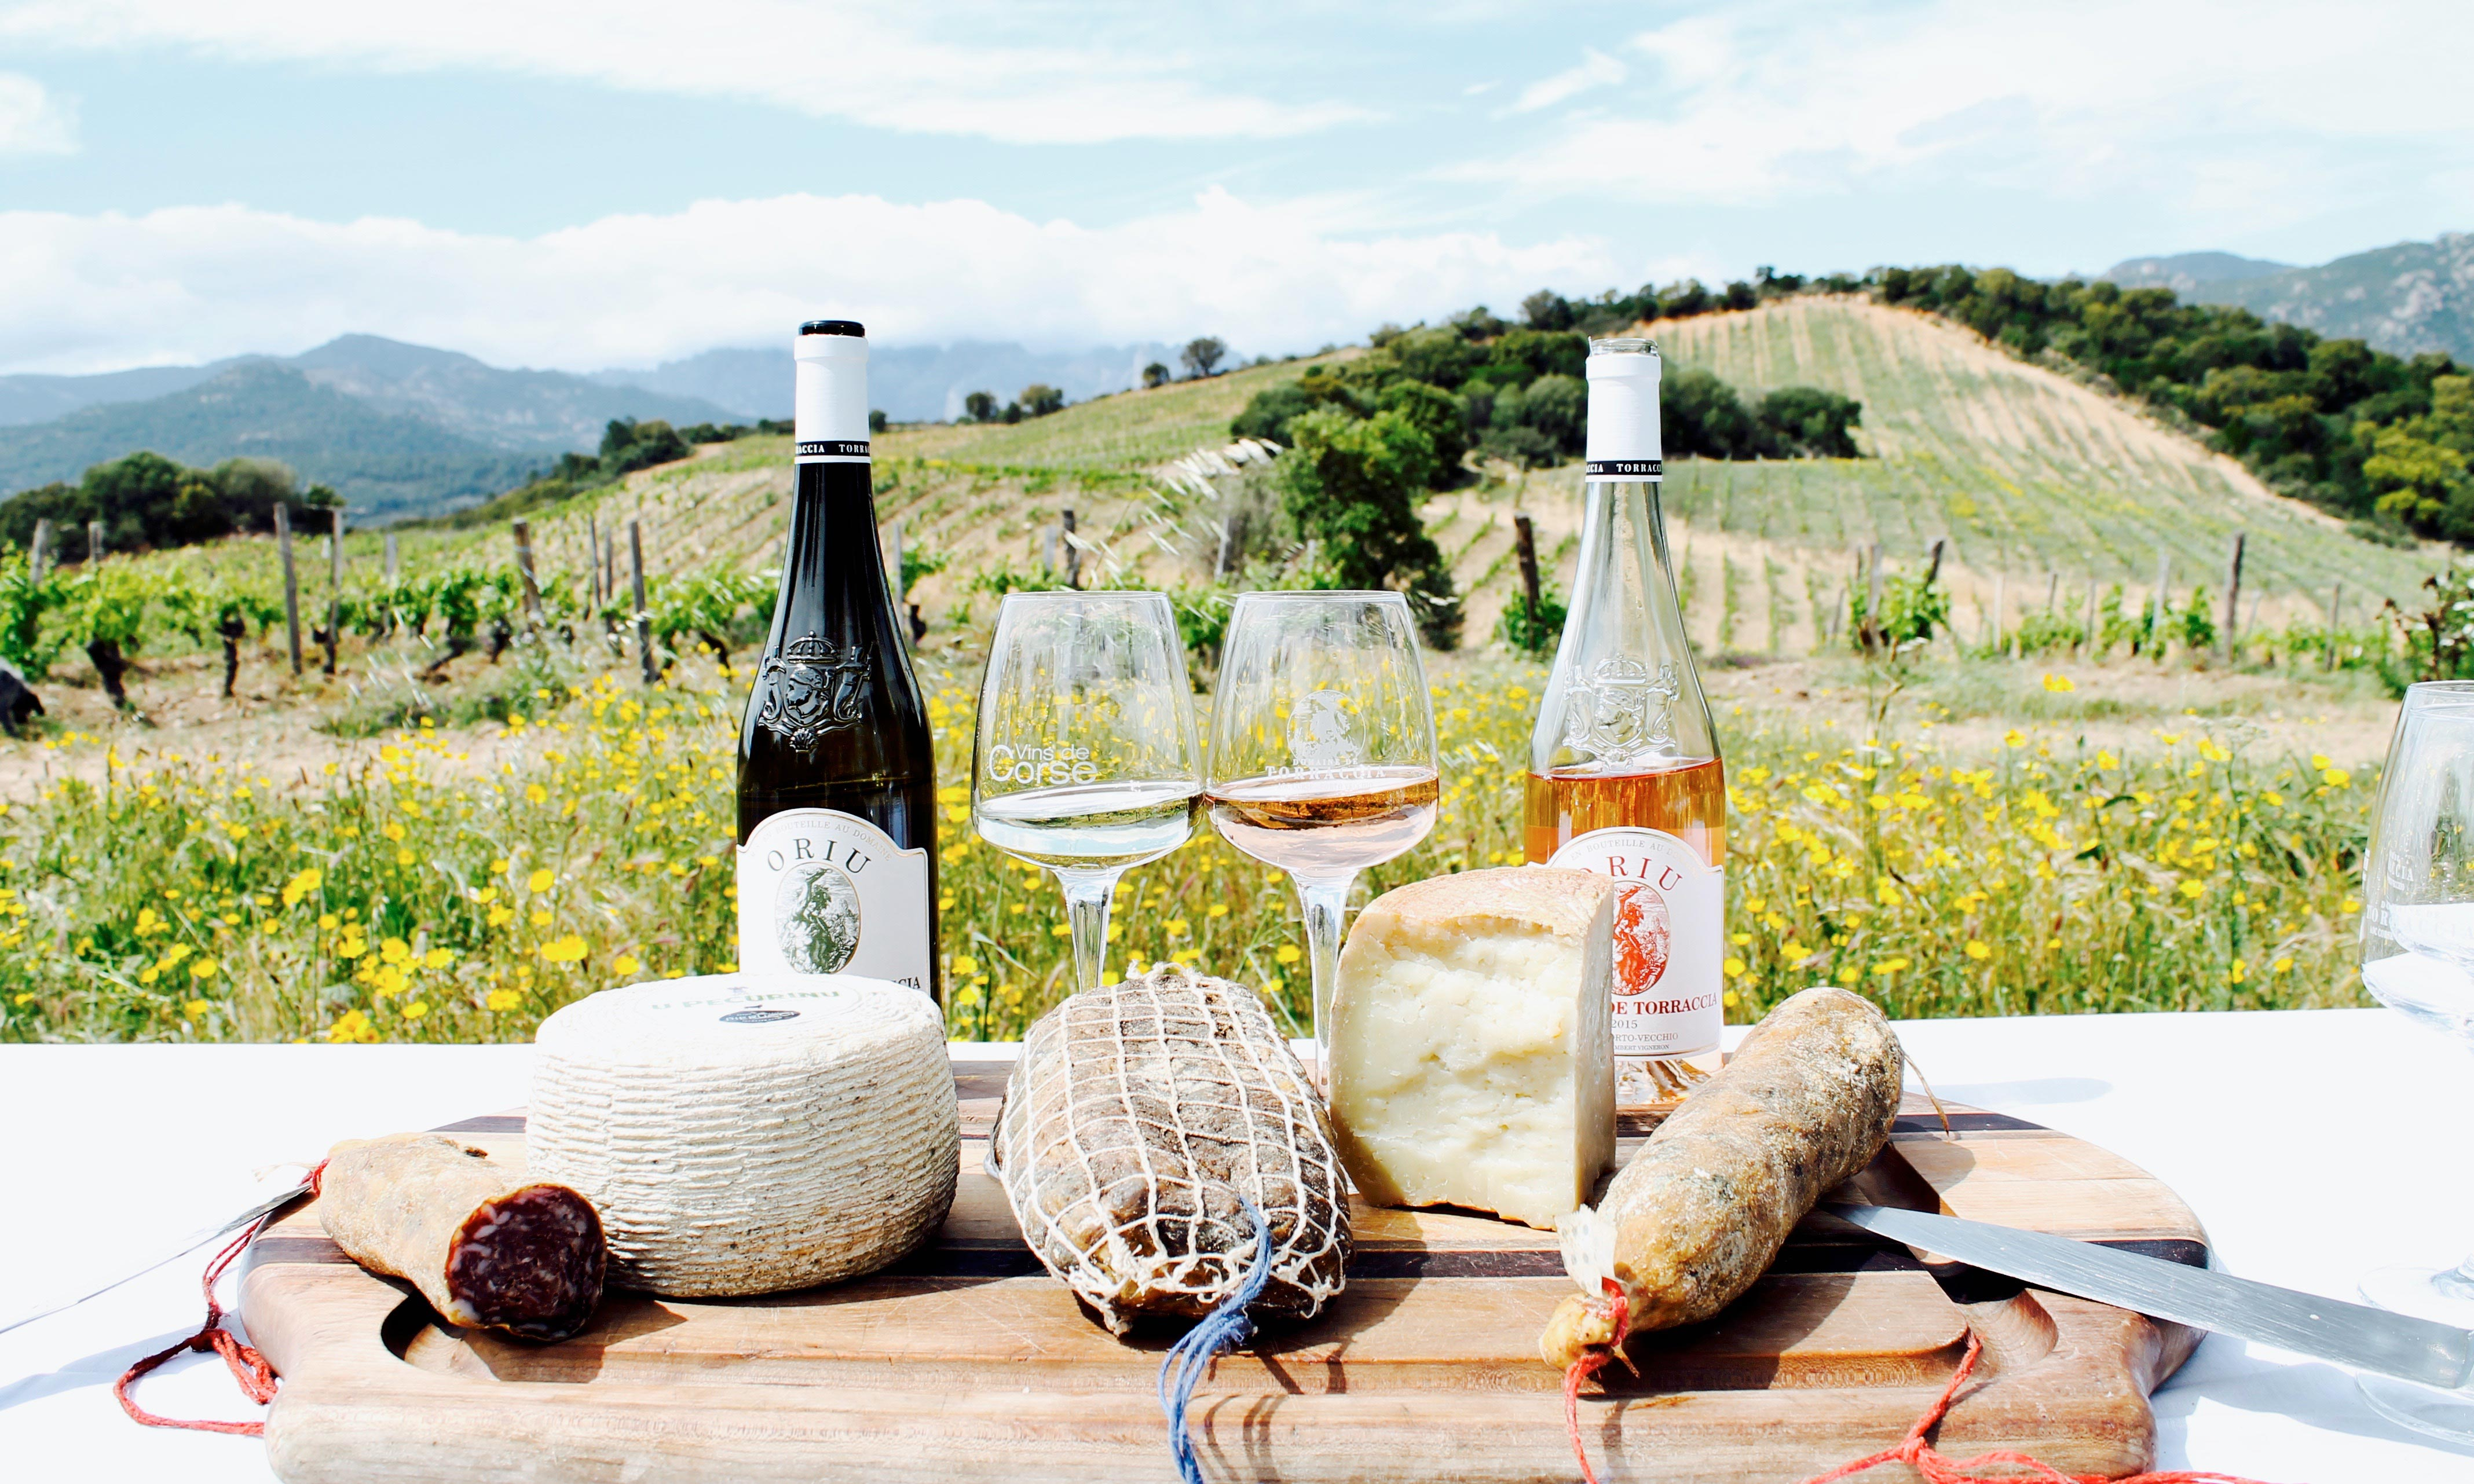 Corsica wine tour, cheese, cured meats and wine